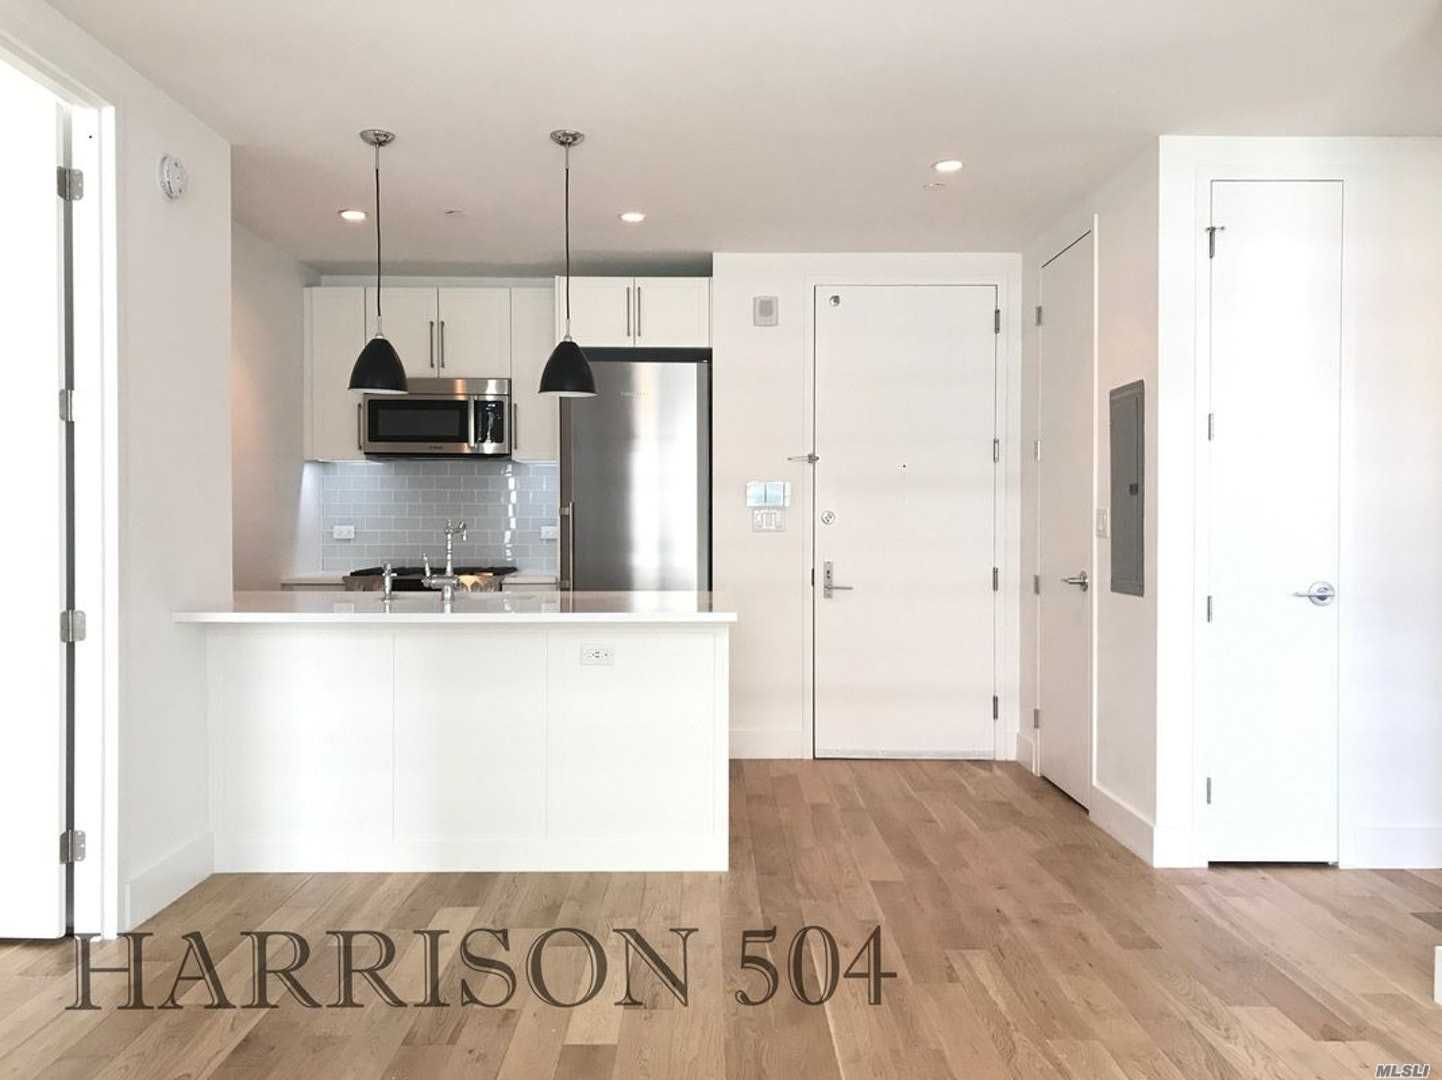 Welcome To The Harrison Residence 504. Gorgeous, Upscale, 2Bed/1Bath Residence, 800 Square Feet, Available March 1, 2019. Open Concept Kitchen With Bosch Appliances, Quartz Counter, Contemp Lighting, White Shaker Cabinets, Subway Tile. Lots Of Space For Cooking, Entertaining Or Relaxing. Spacious Lr, 2 Full-Size Bedrooms, Bosch W/D In Unit. 1 Contemp Bath. 27th Floor Roof Terr With Bbq And Hudson R View. Party Room, Gym, Children's Room.